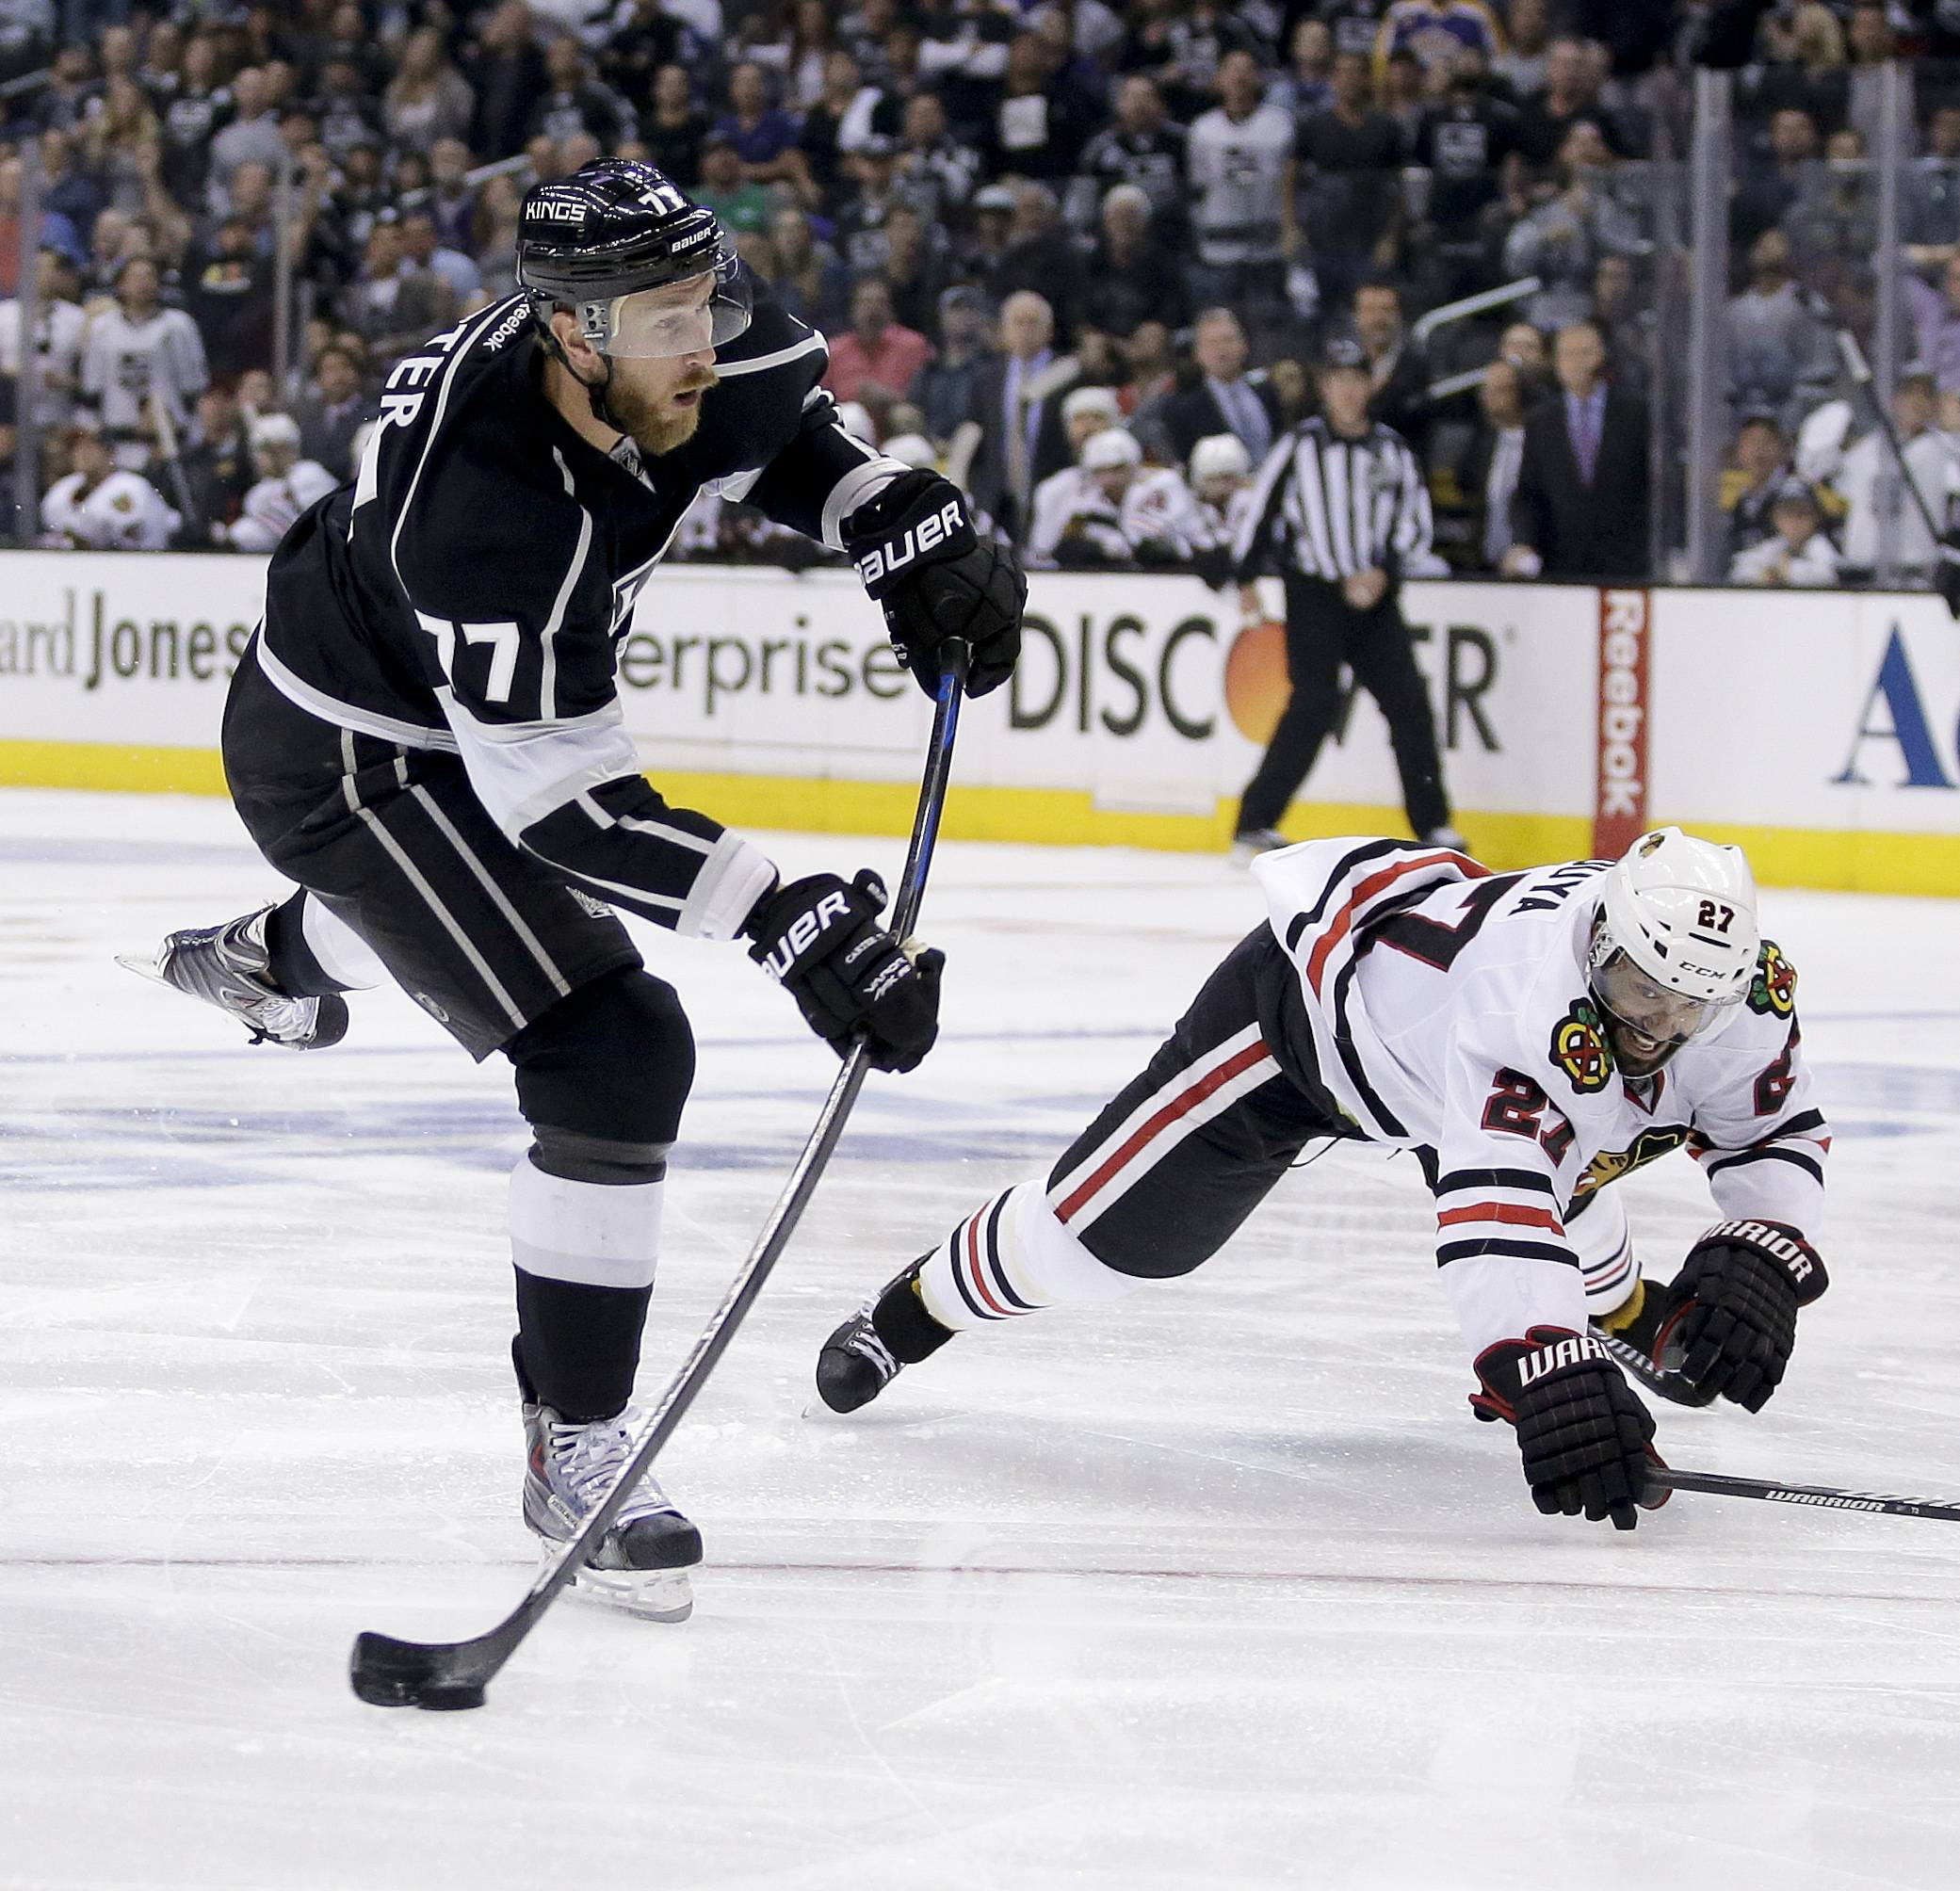 Los Angeles Kings center Jeff Carter, left, shoots past Chicago Blackhawks defenseman Johnny Oduya during the second period of Game 4 of the Western Conference finals of the NHL hockey Stanley Cup playoffs in Los Angeles, Monday, May 26, 2014.